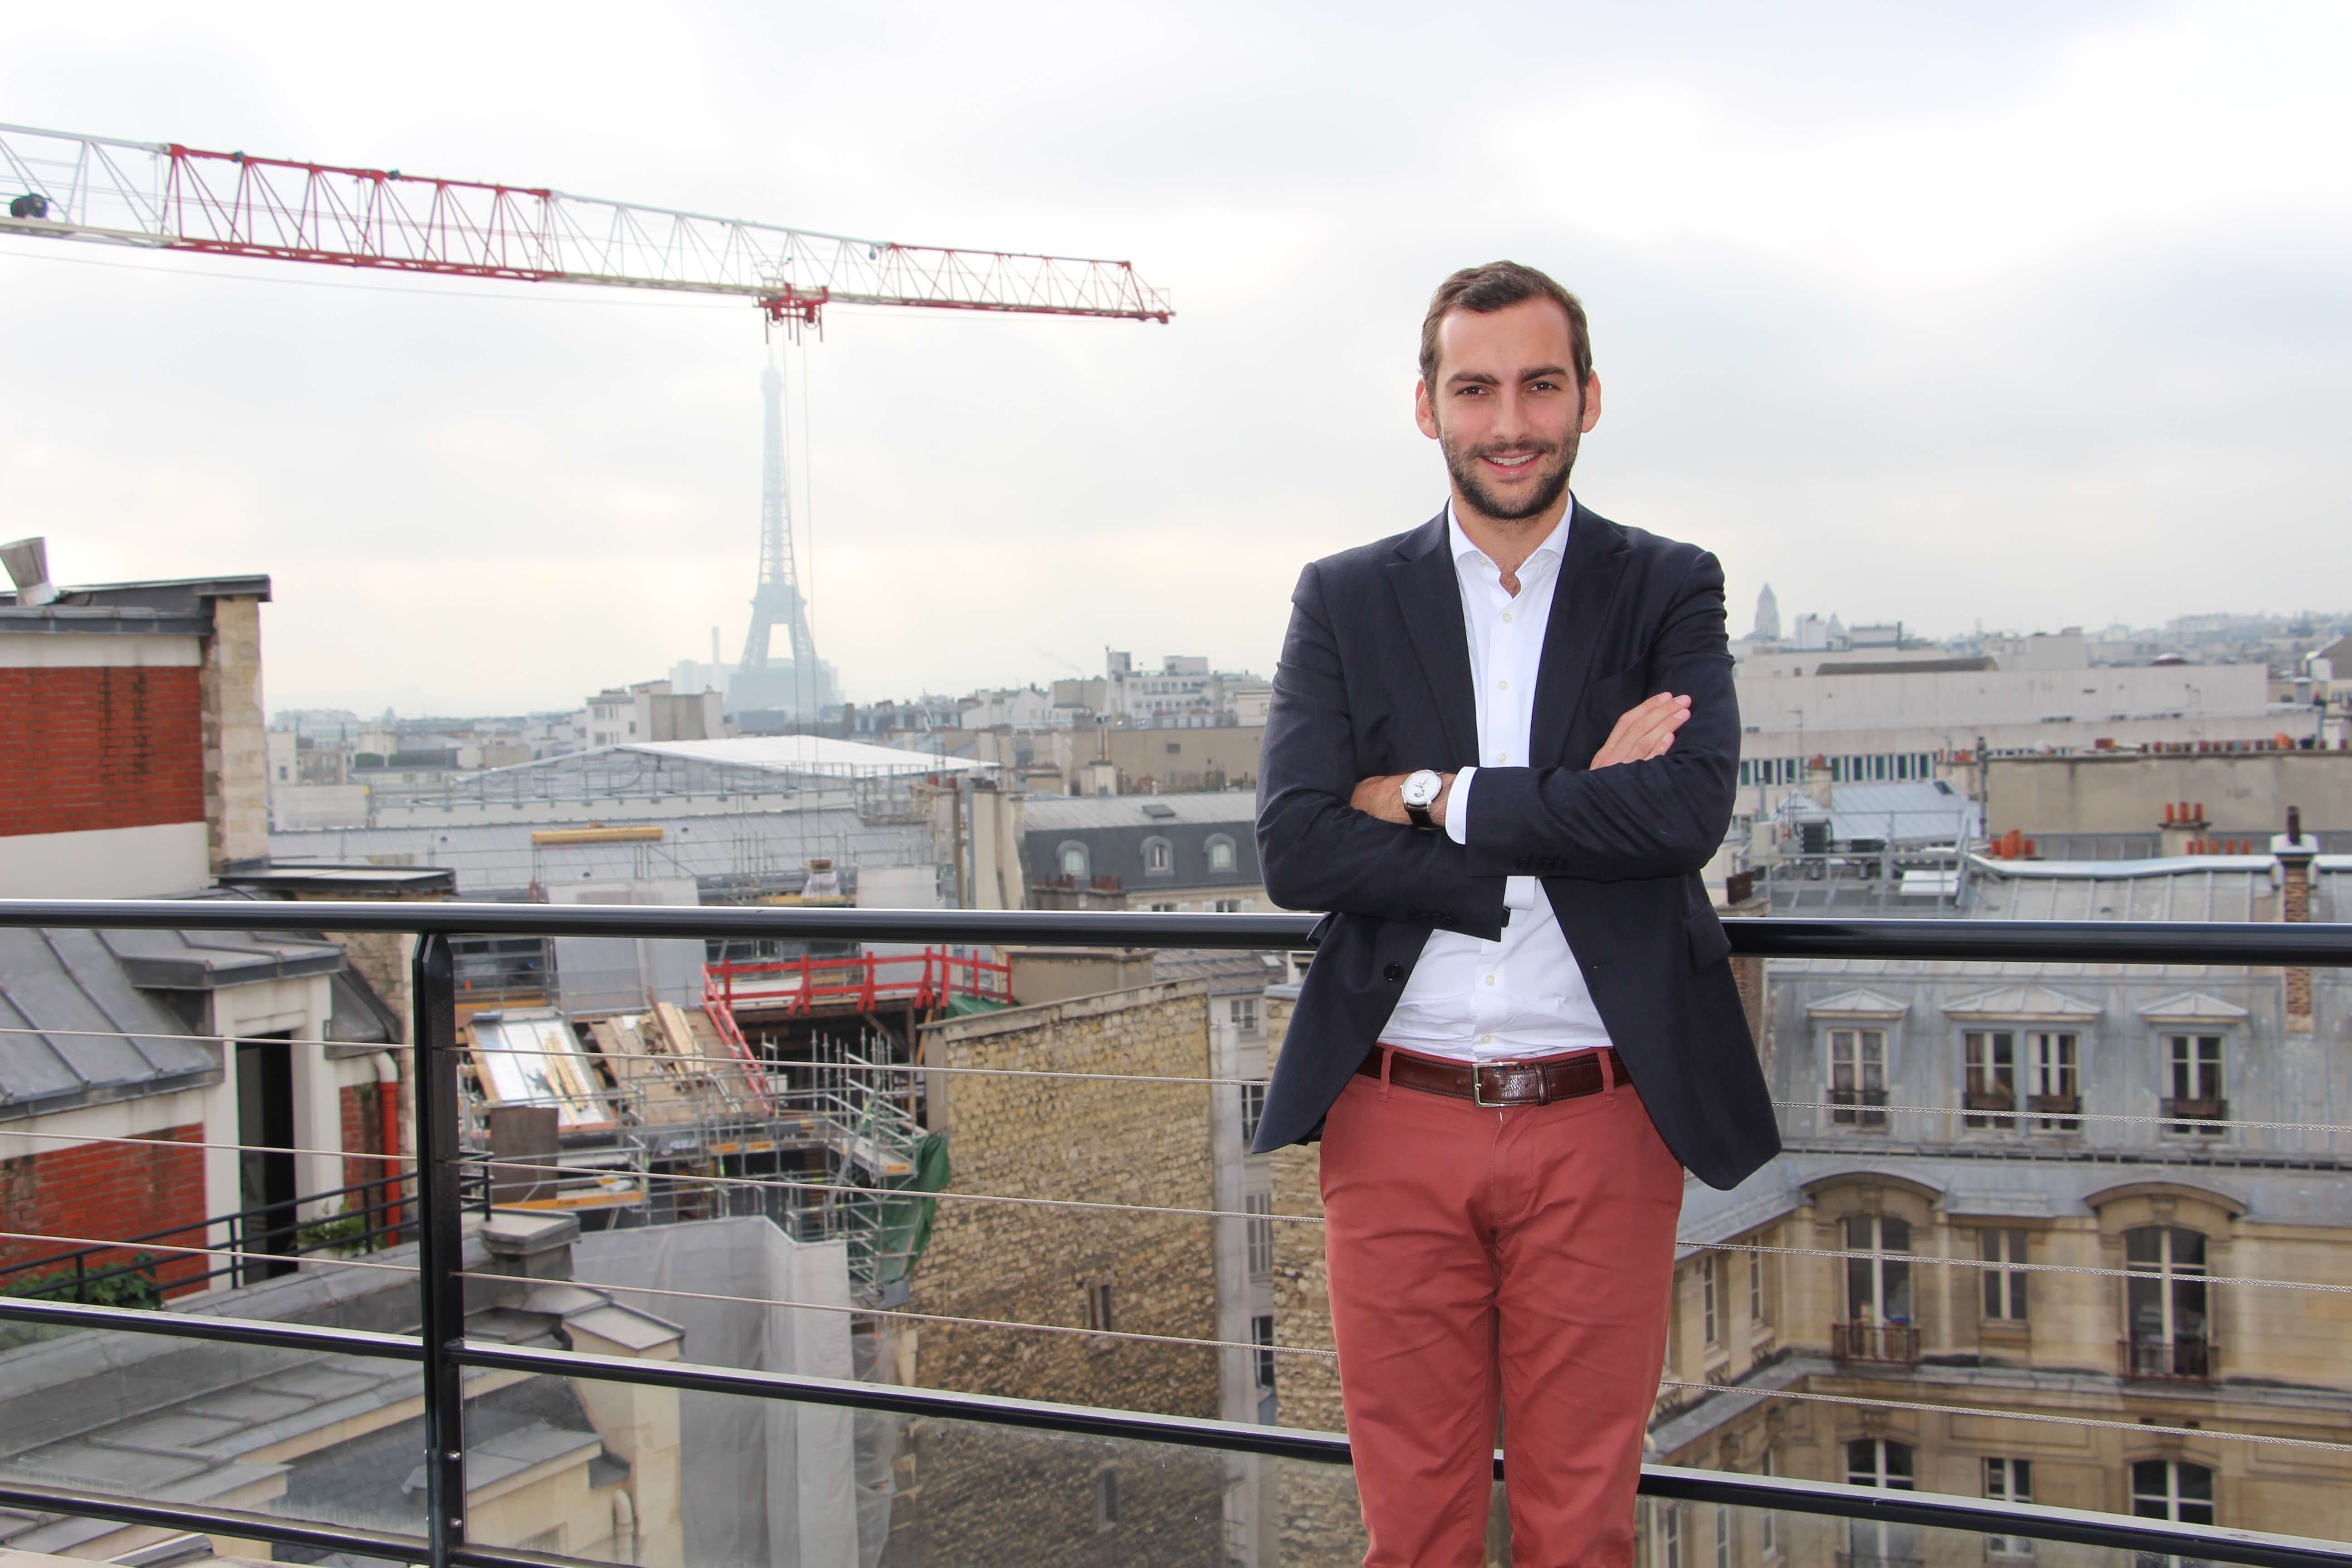 Interview d'Alexandre Toussaint : le Club Deal, l'investissement locatif immobilier entre amis par Baltis Capital